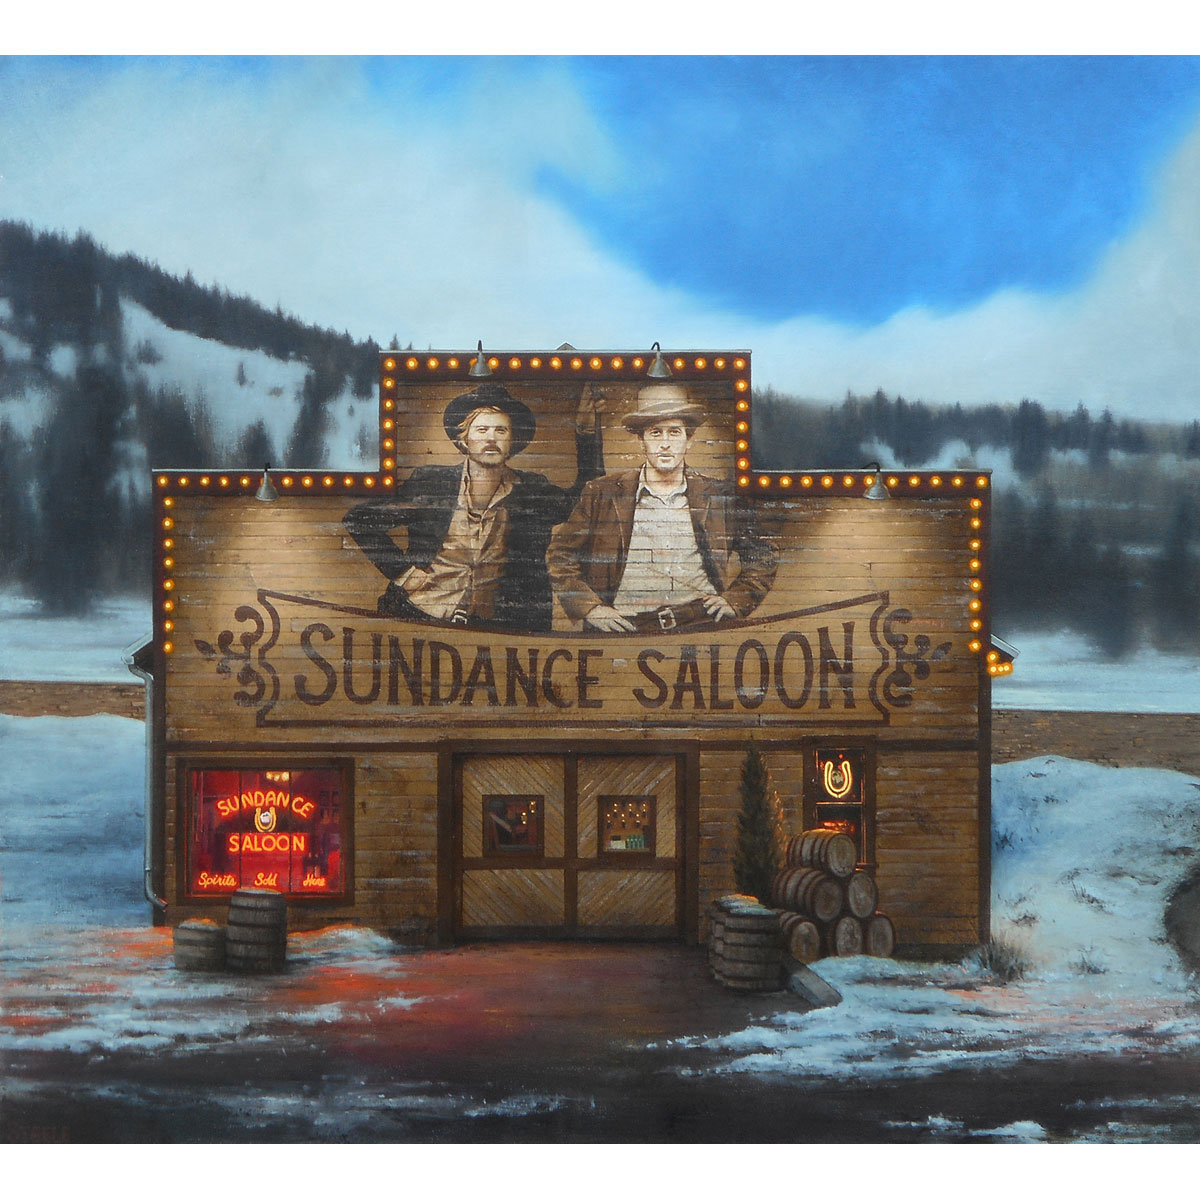 Sundance Saloon by Ben Steele